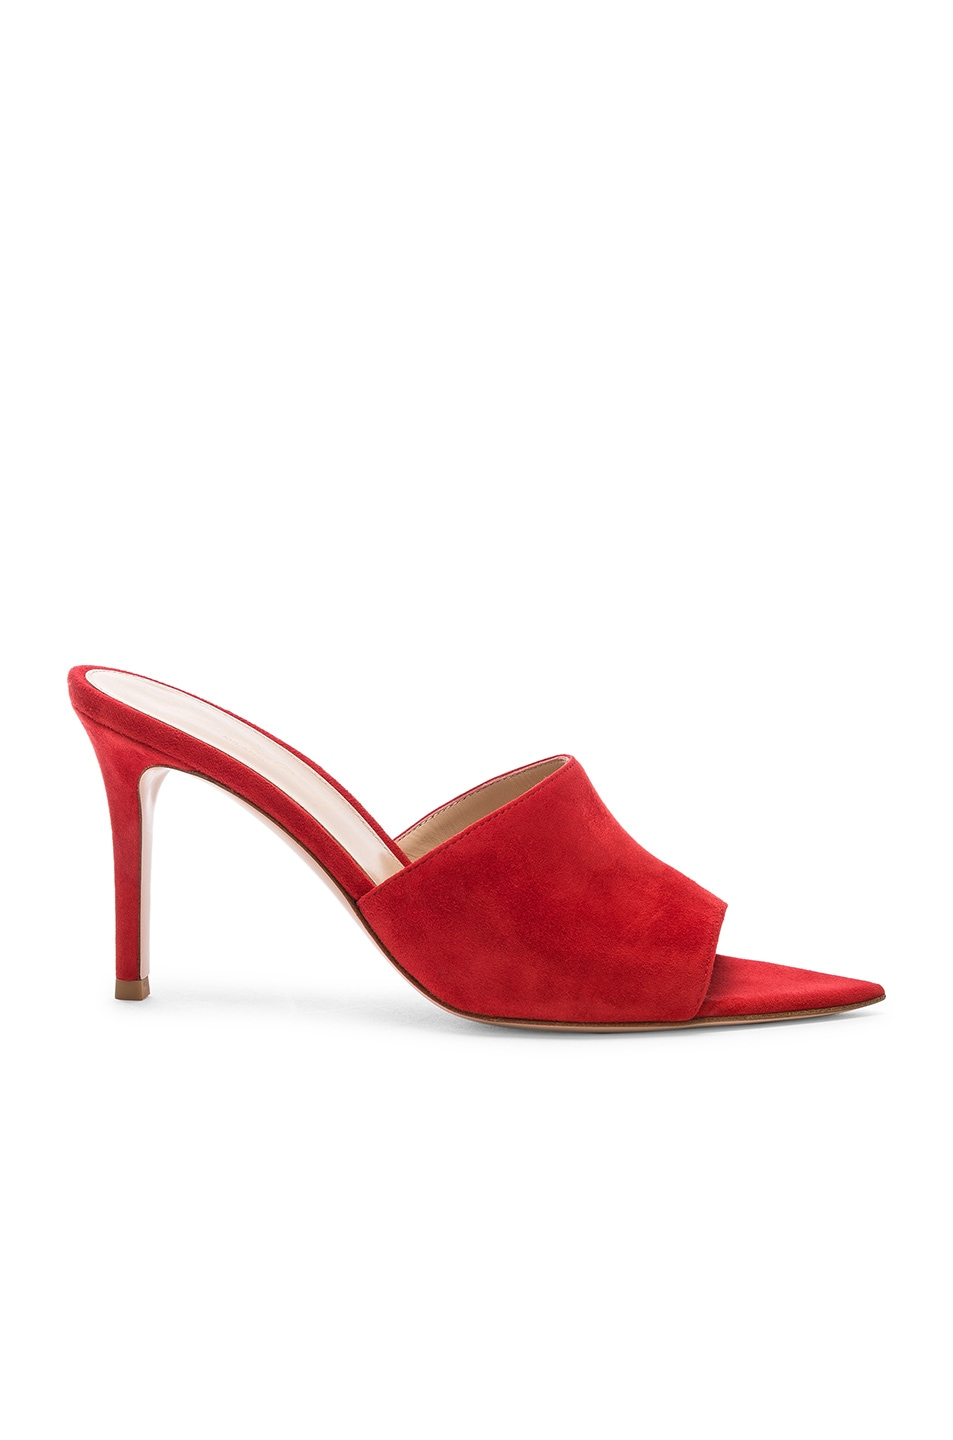 Image 1 of Gianvito Rossi Alise Mules in Tabasco Red